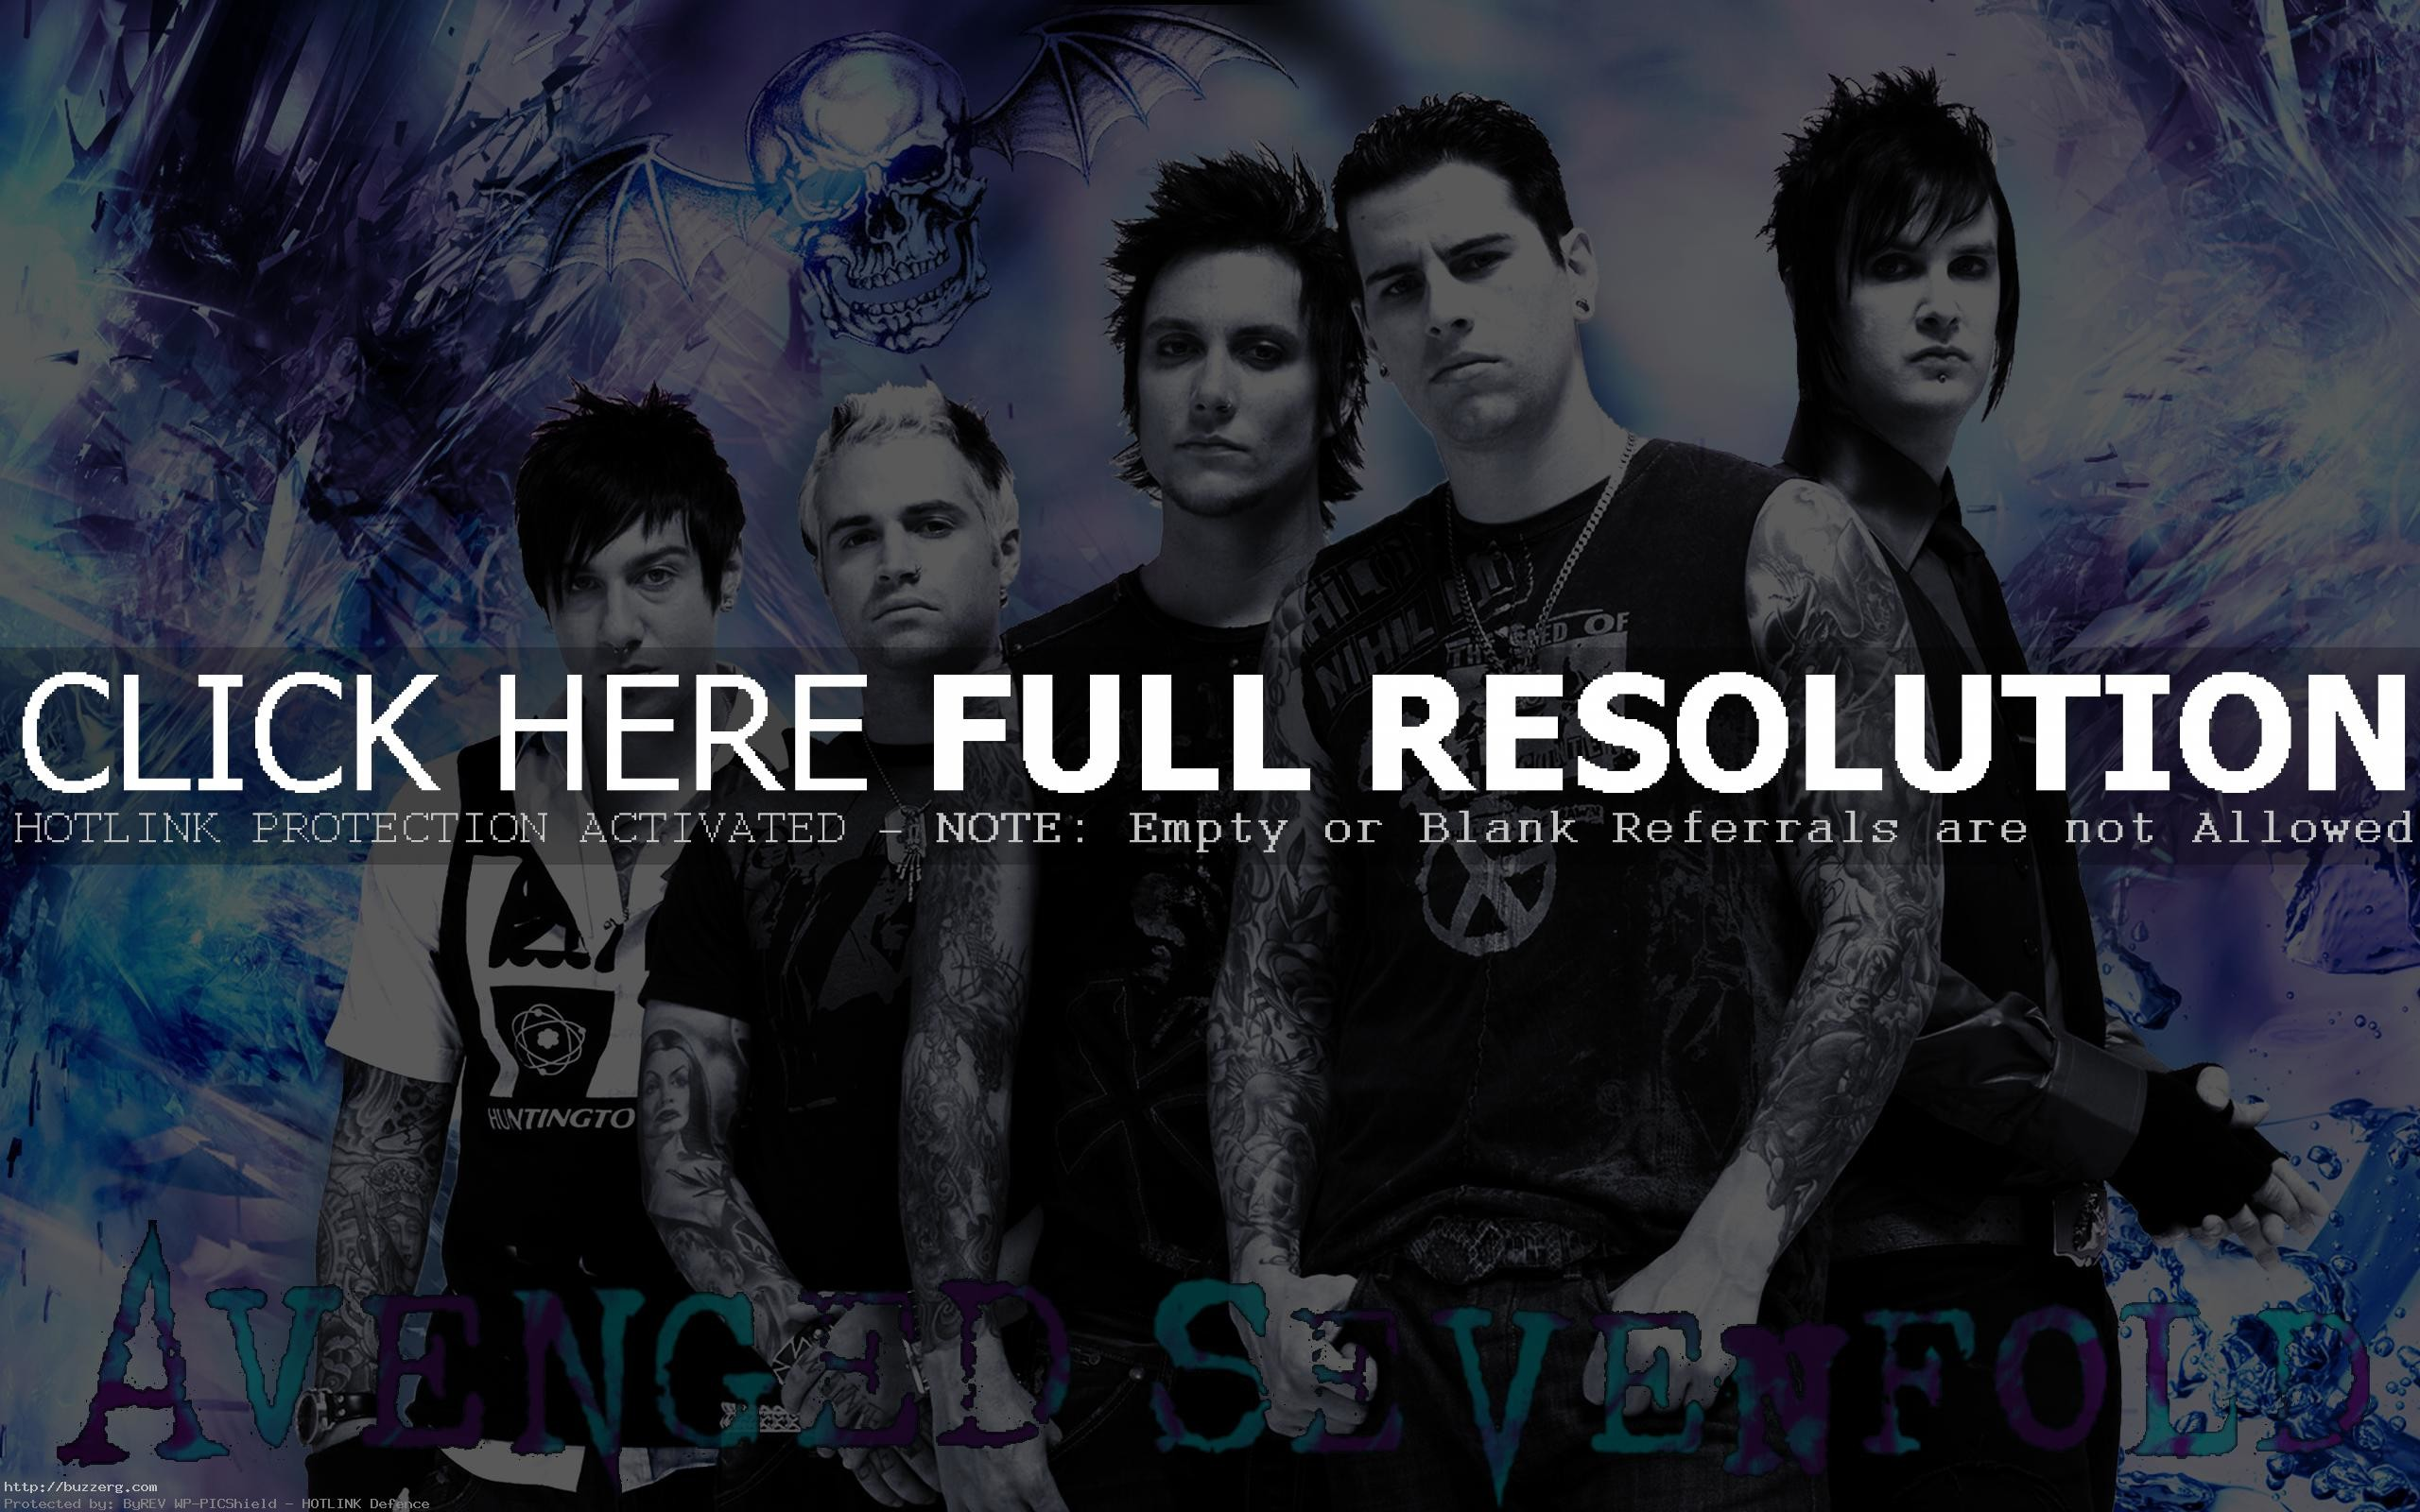 Avenged sevenfold wallpaper hd 66 images 1920x1080 coldplay voltagebd Gallery